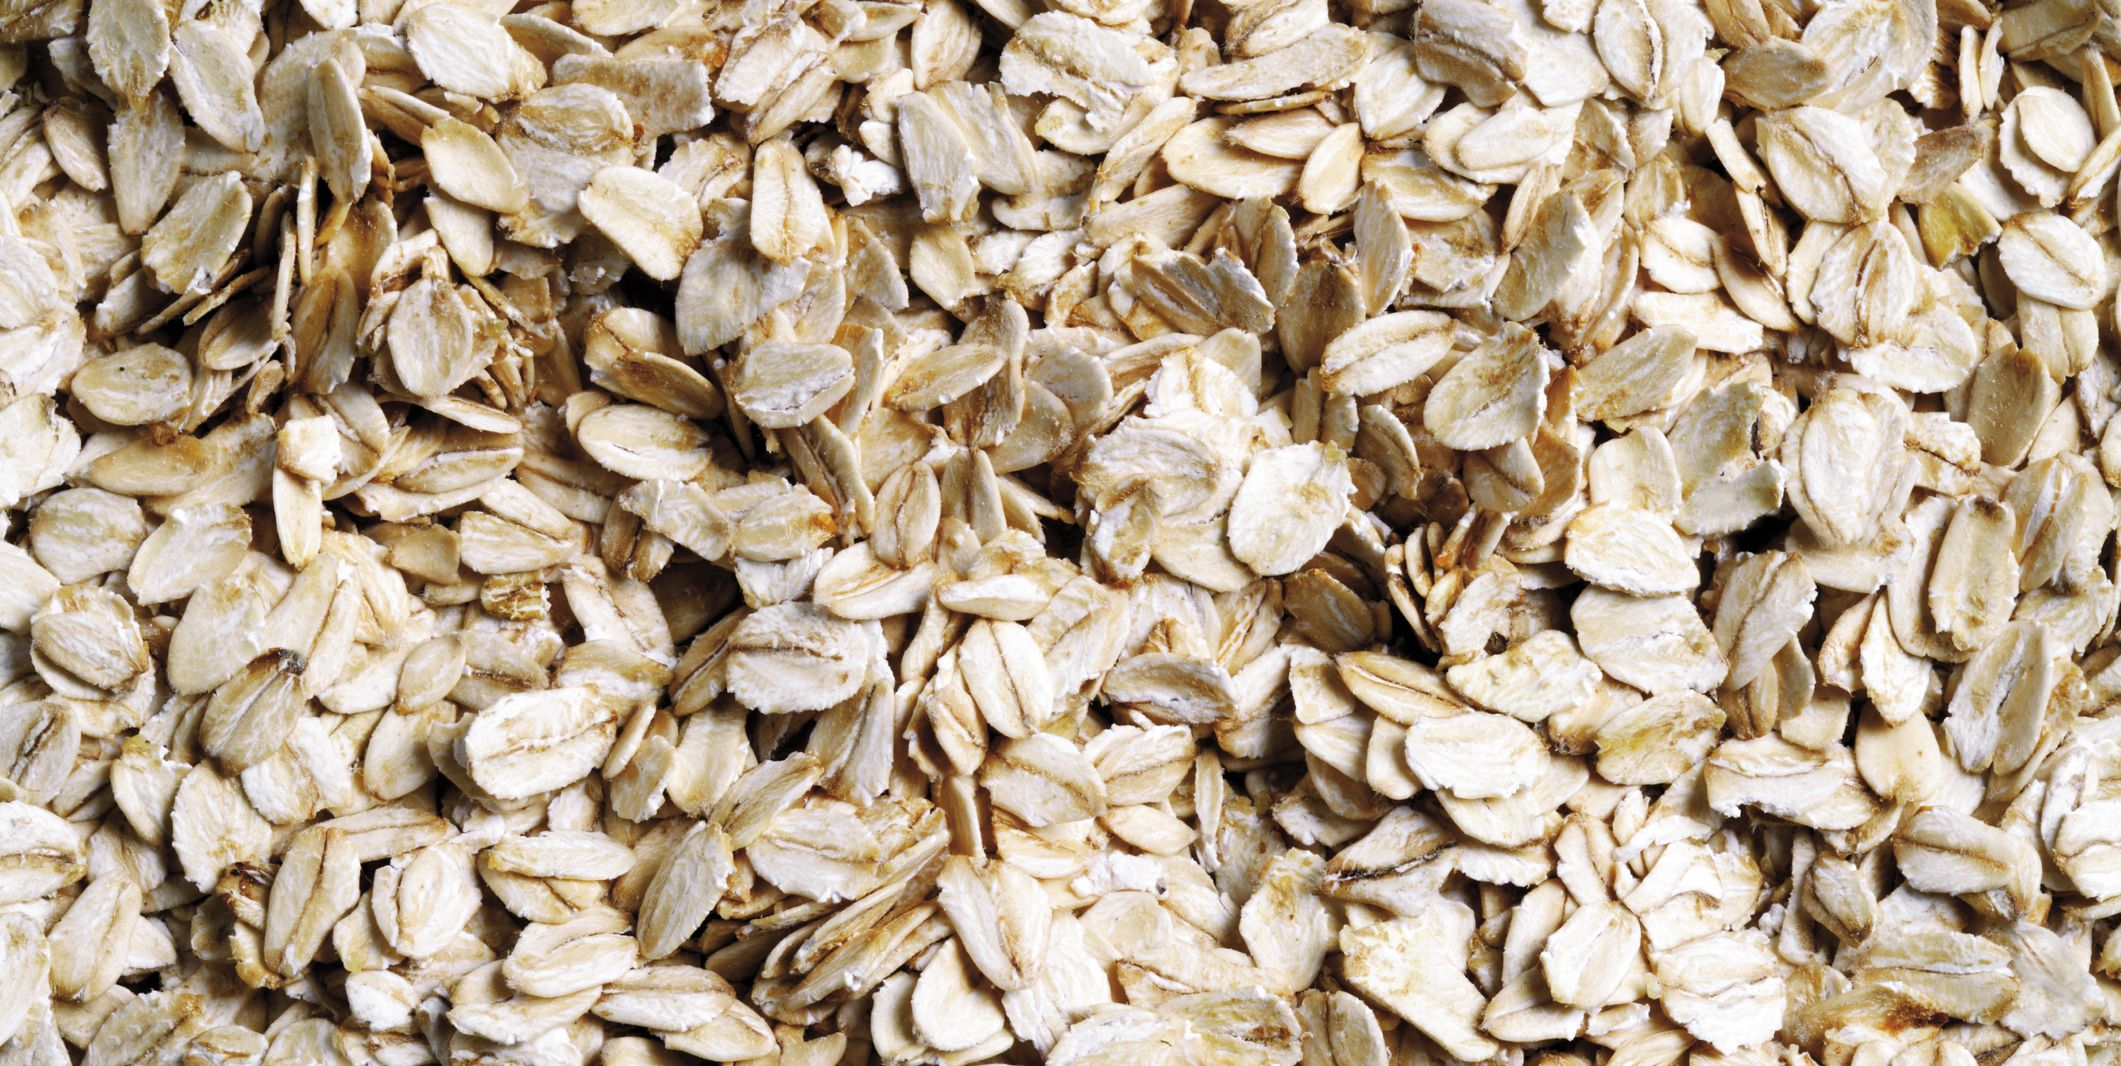 Dry uncooked oats